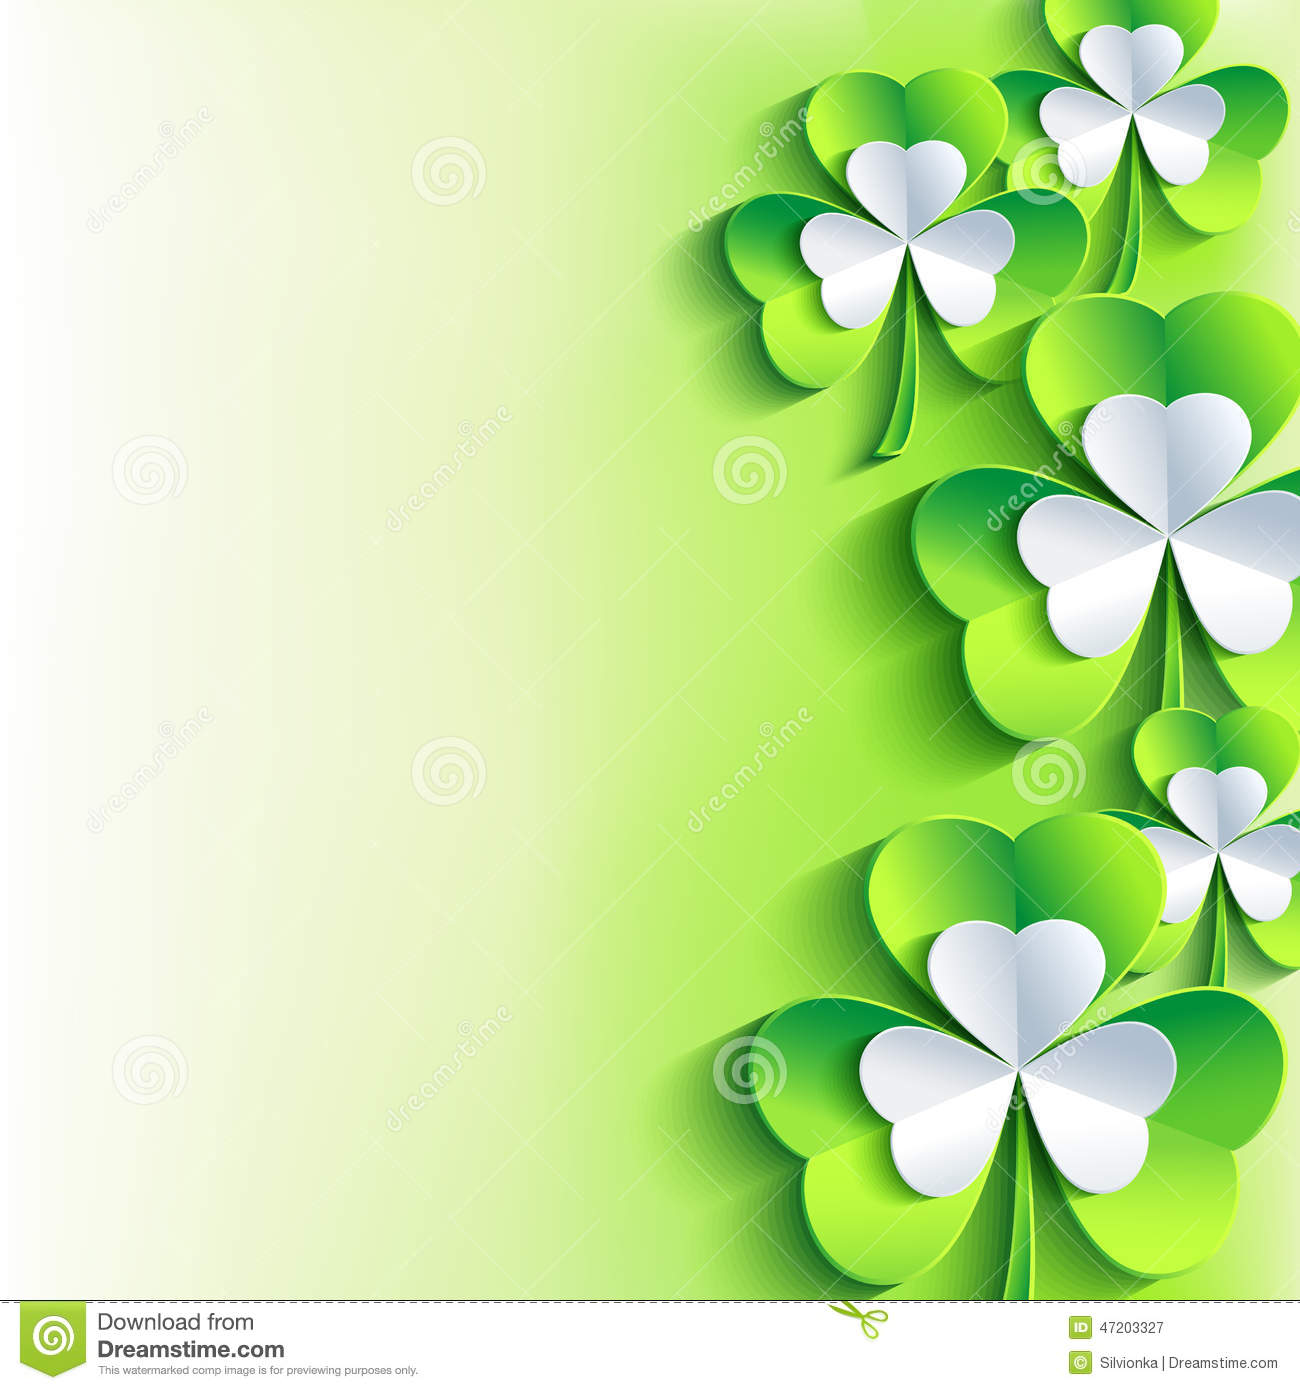 5206ae4b ... gray and green 3d leaf clover. Trendy stylish spring background. Bright  St. Patrick day wallpaper. Vector illustration. More similar stock  illustrations